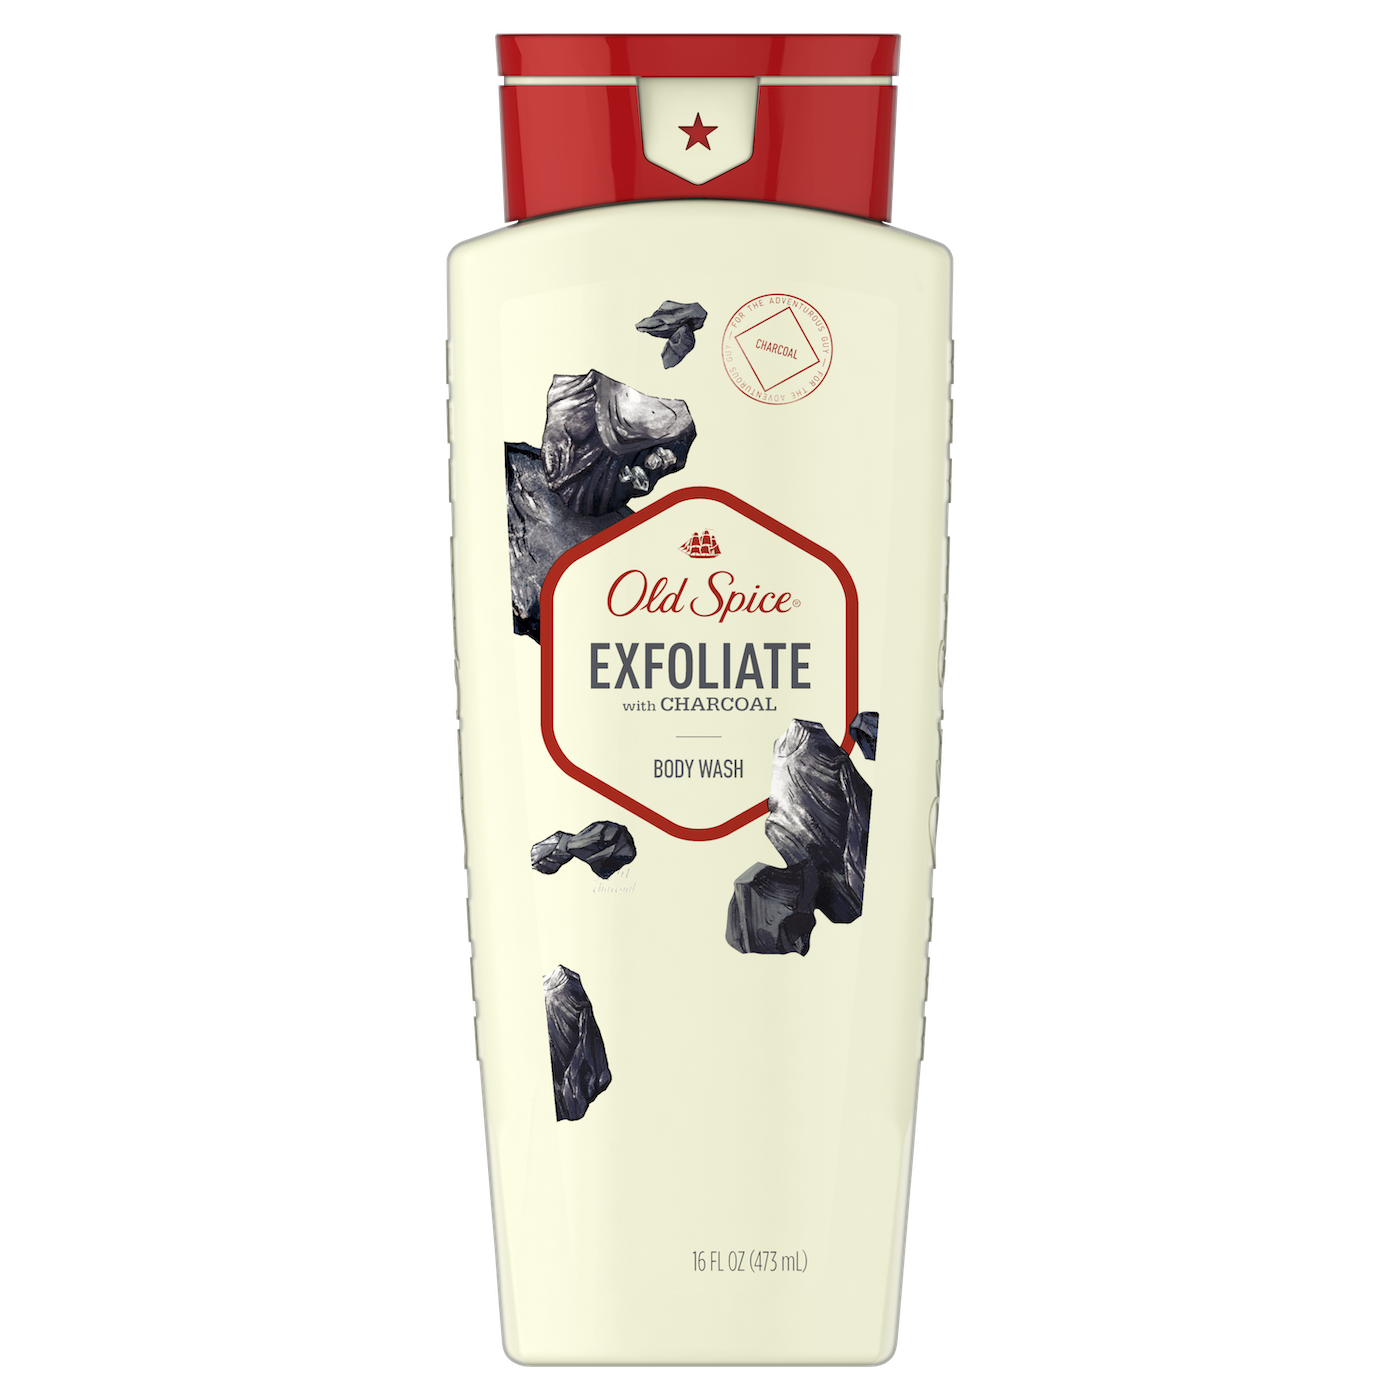 Exfoliate with charcoal body wash